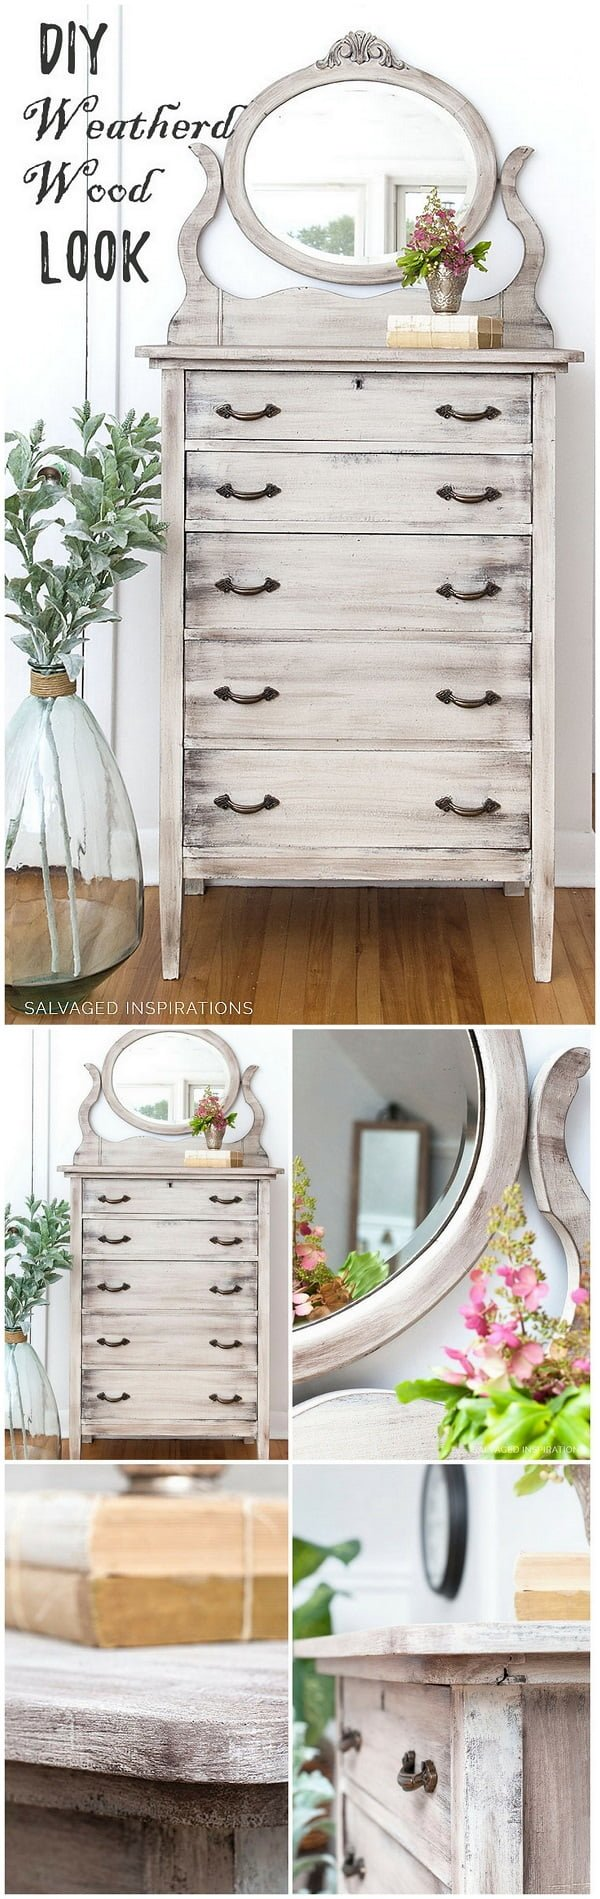 Easy idea on how to create a #DIY weathered #wood look #homedecor #farmhouse #project